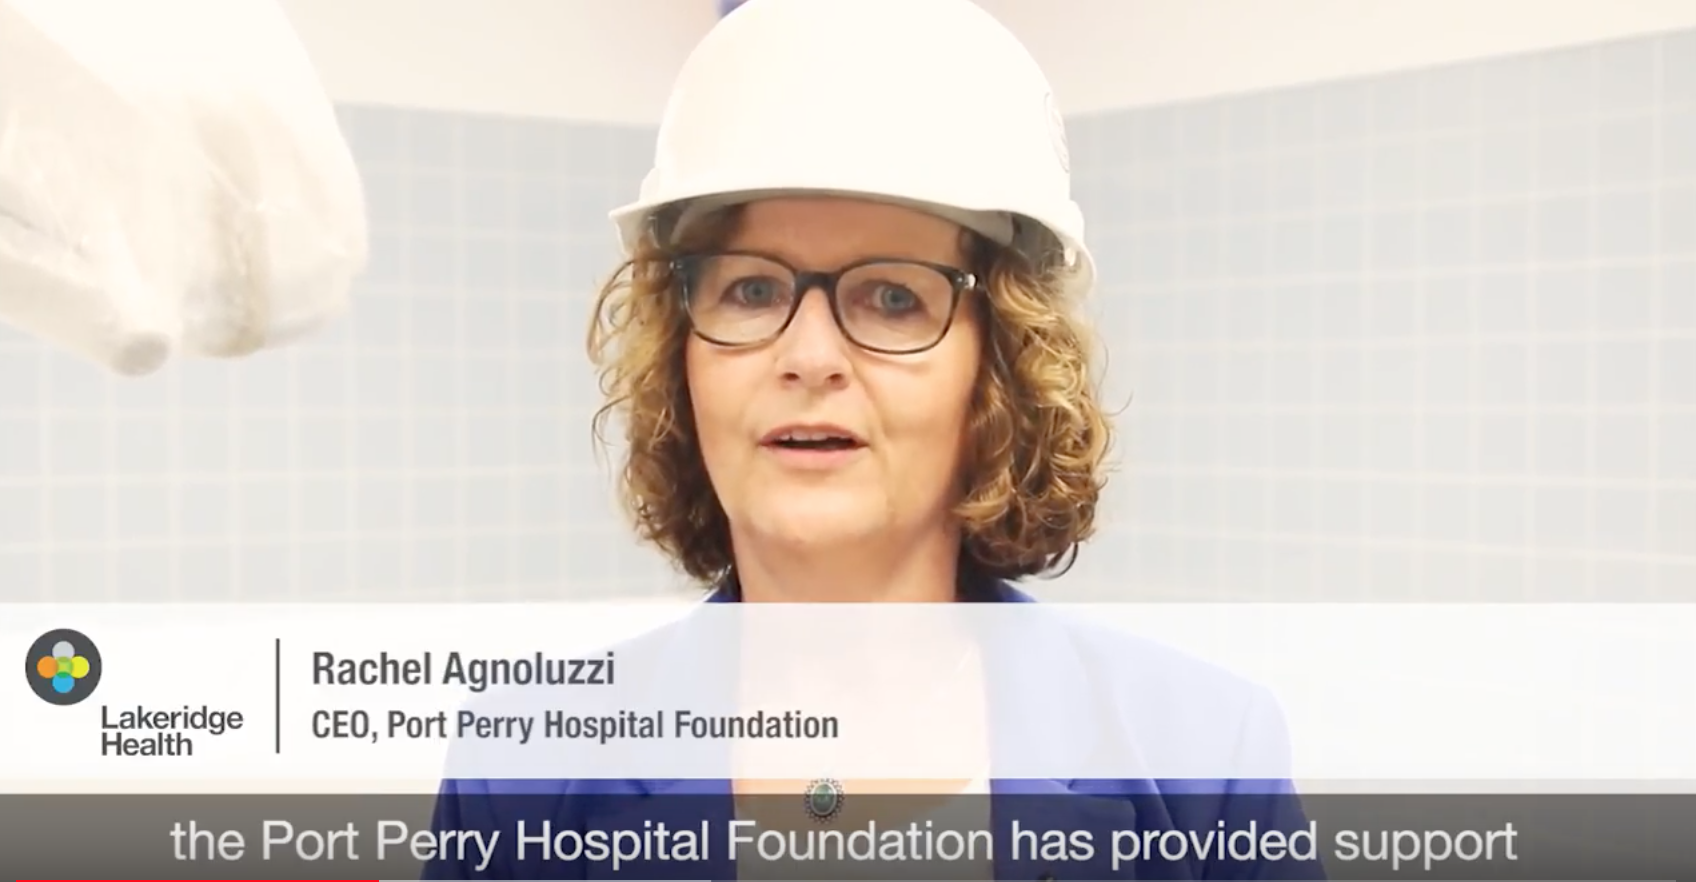 Port Perry Hospital Foundation Support